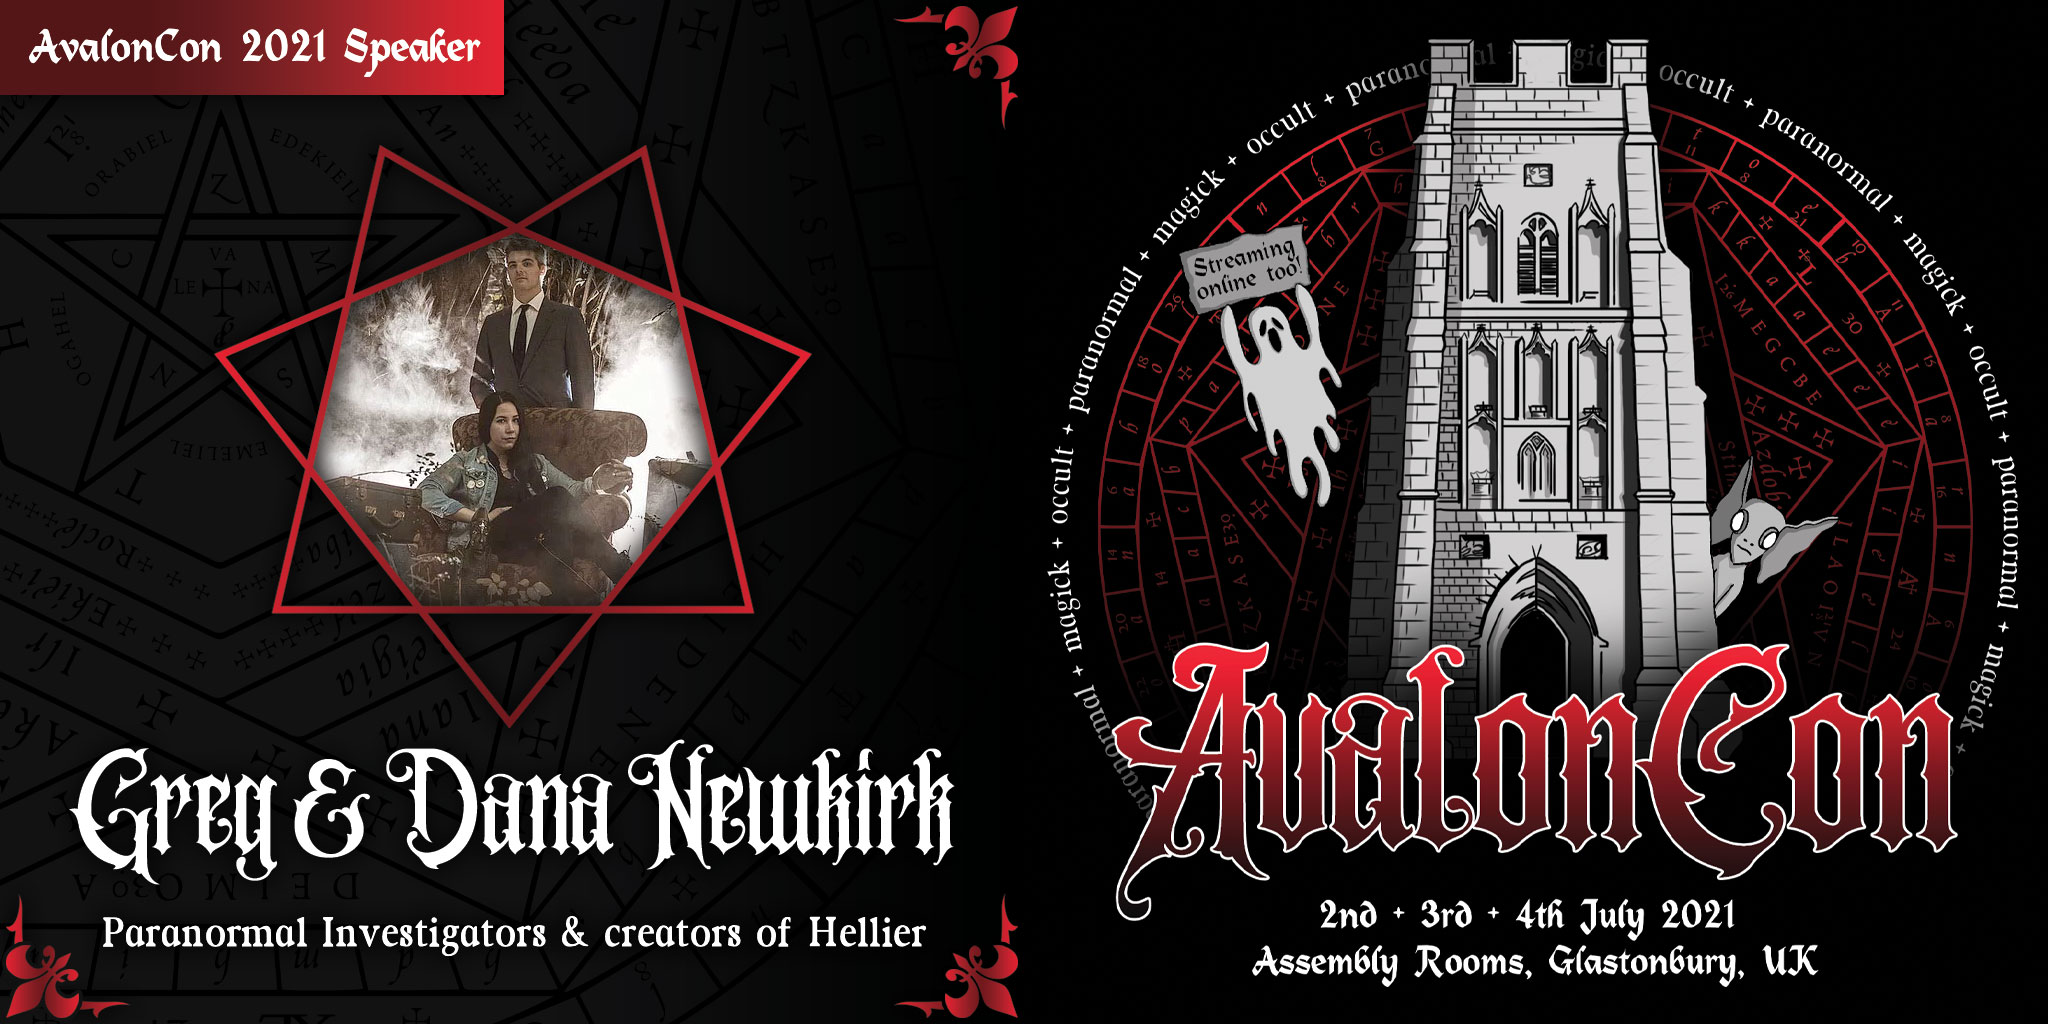 A graphic I designed to announce Damien Echols as a speaker at AvalonCon.